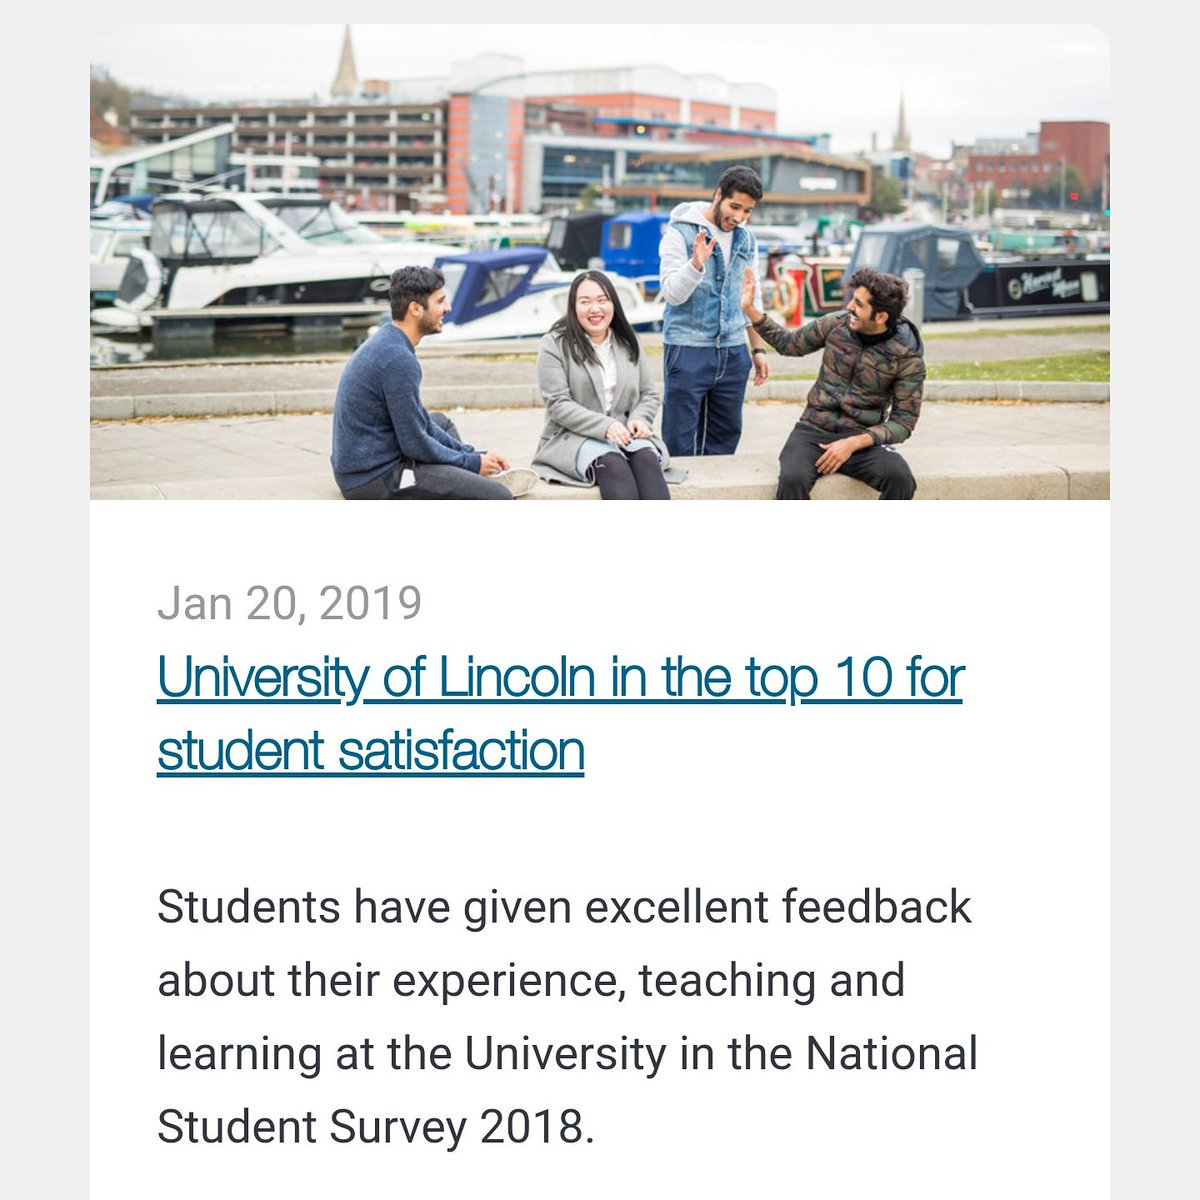 University of Lincoln is one of top 10 for student satisfaction. Contact us now to apply to the best universities  #UniversityOfLincoln #student #satisfaction #studyabroad #studyinUK #Studyvisa #studyinCanada #studyinUSA #ksa #saudi #arabia #iran #bahrain #qatar #morocco #kuwait